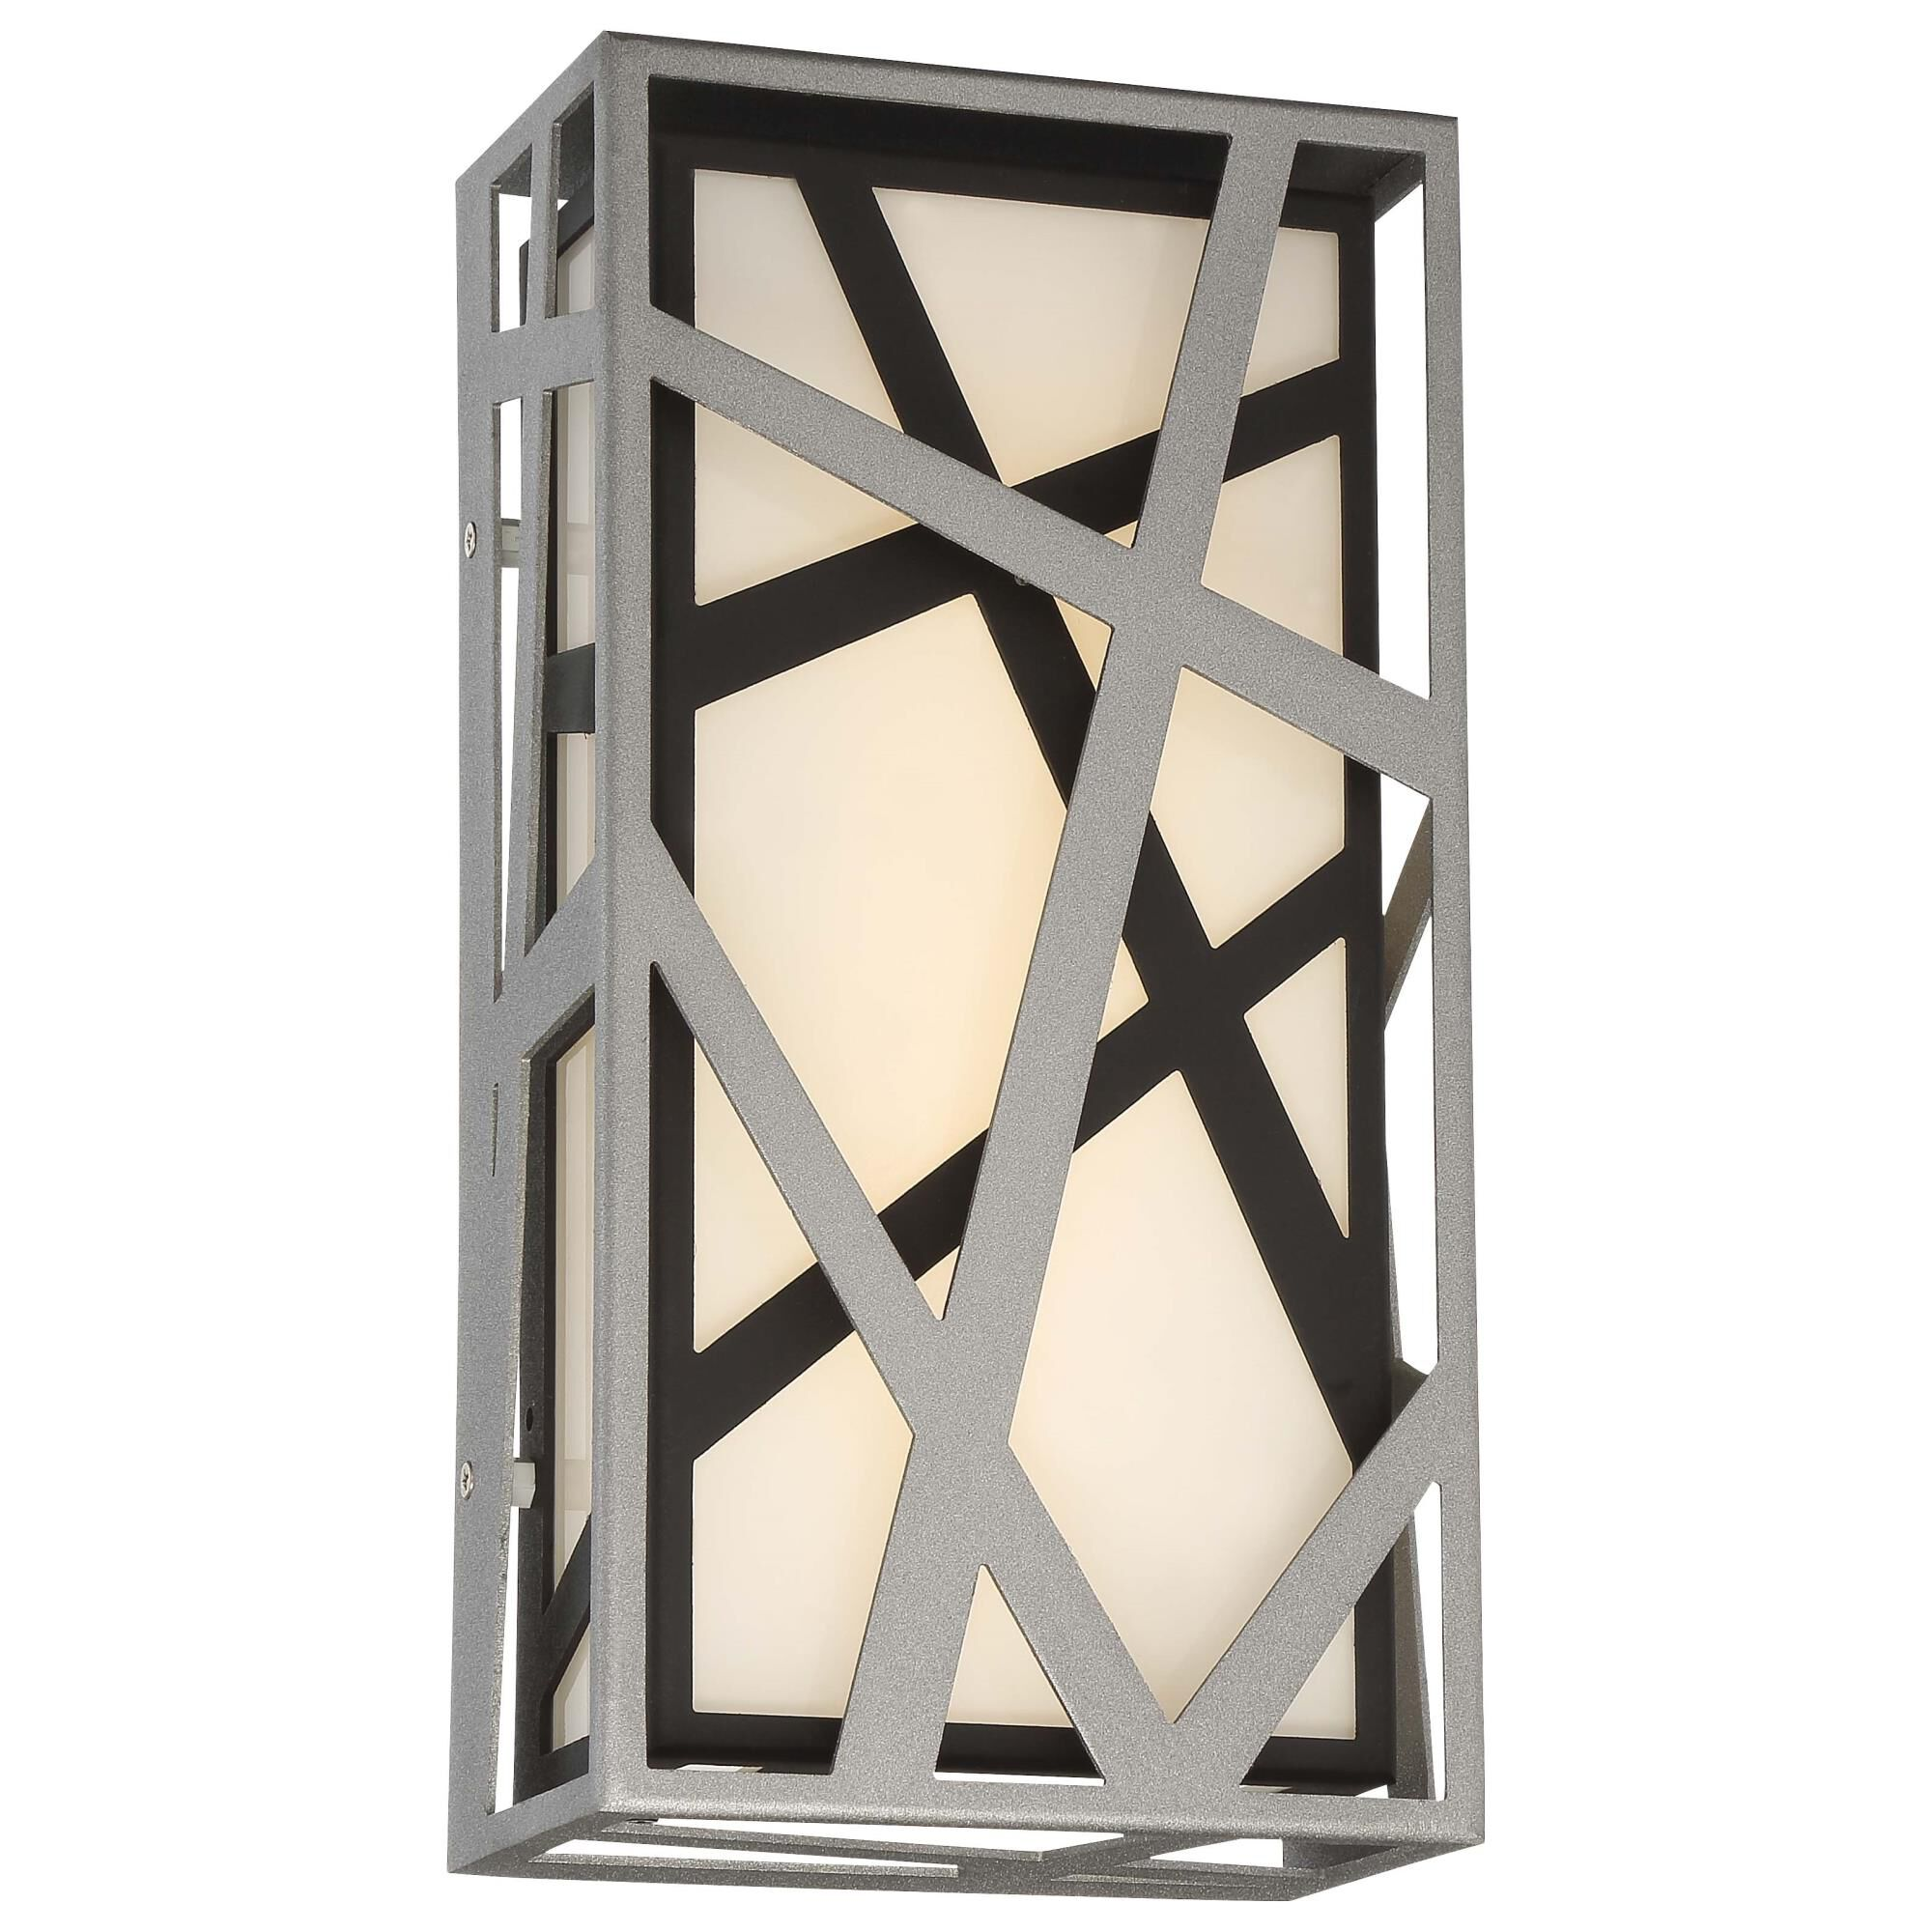 Kovacs Duvera 13 Inch Tall 1 Light Led Outdoor Wall Light Duvera - P1147-658-l - Modern Contemporary